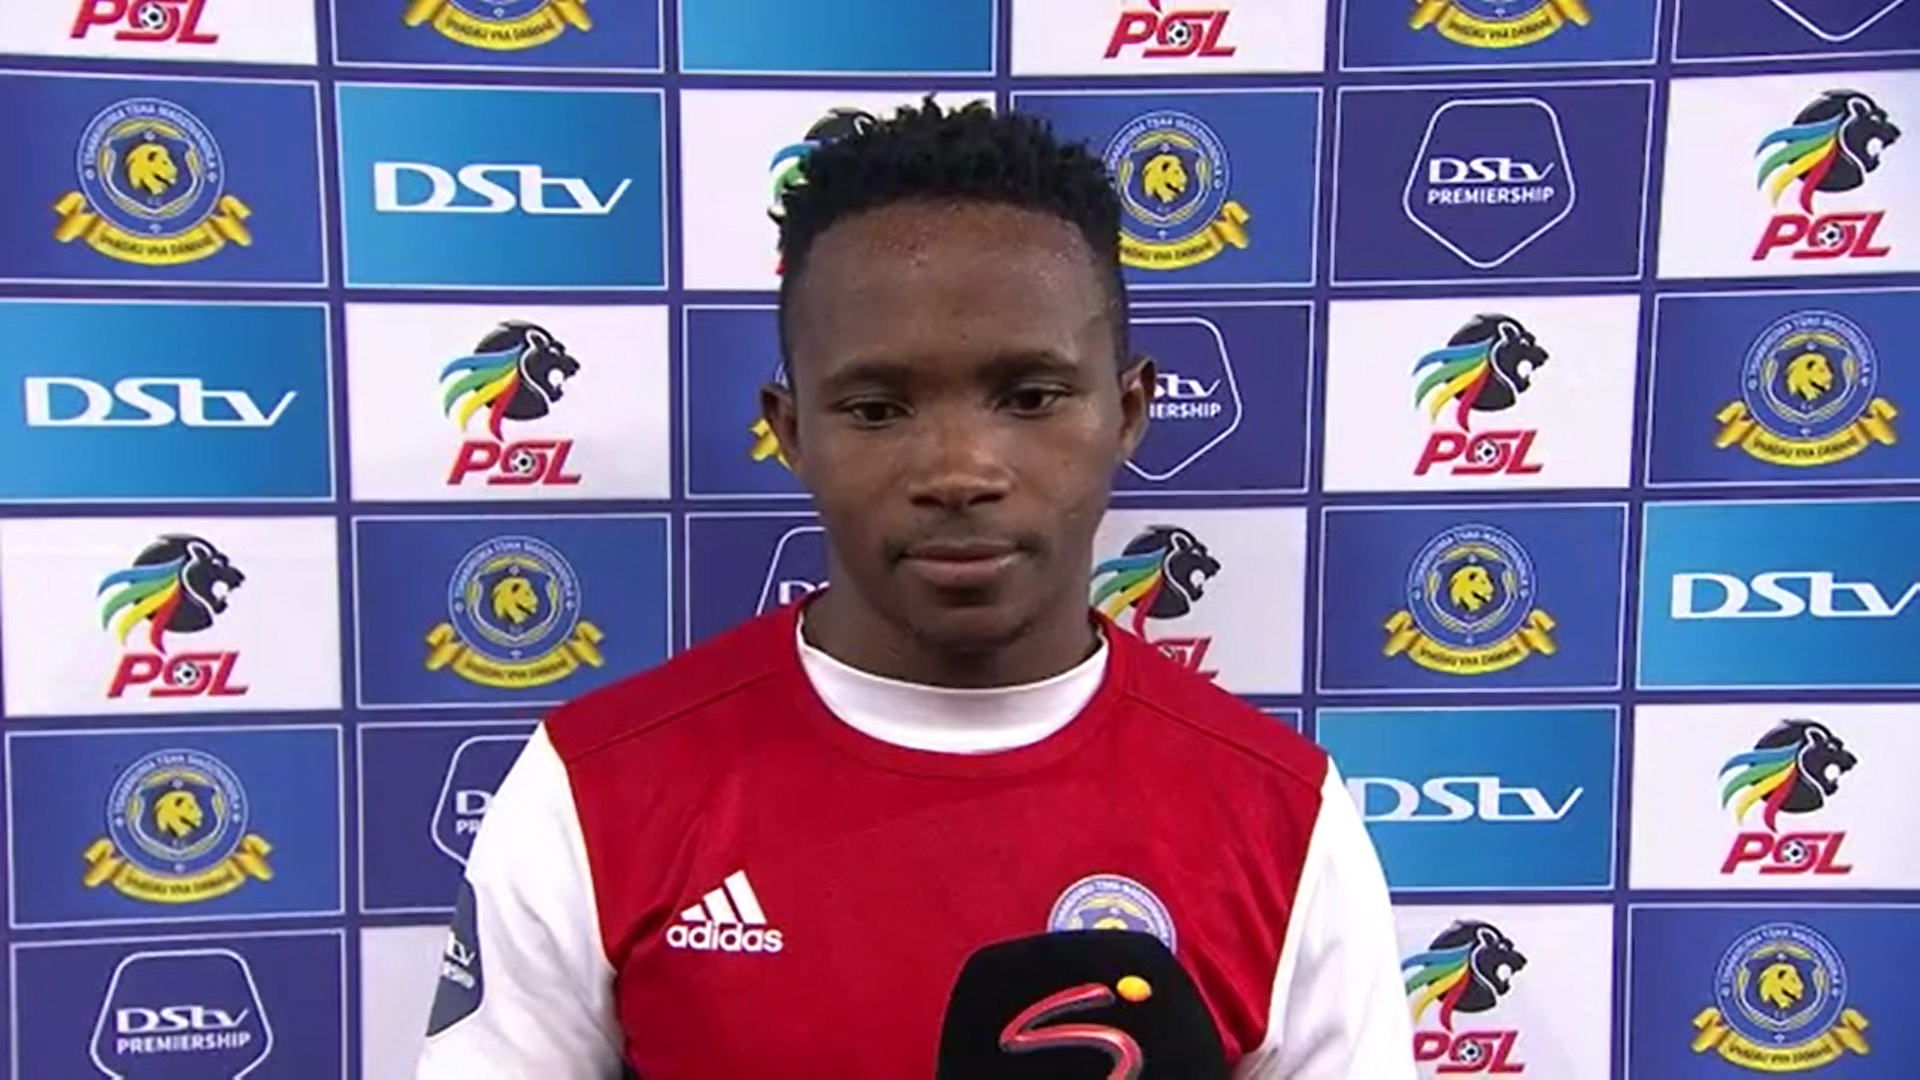 DStv Premiership | Tshakhuma FC v Kaizer Chiefs | Post-match interview with Ndabayithethwa Ndlondlo